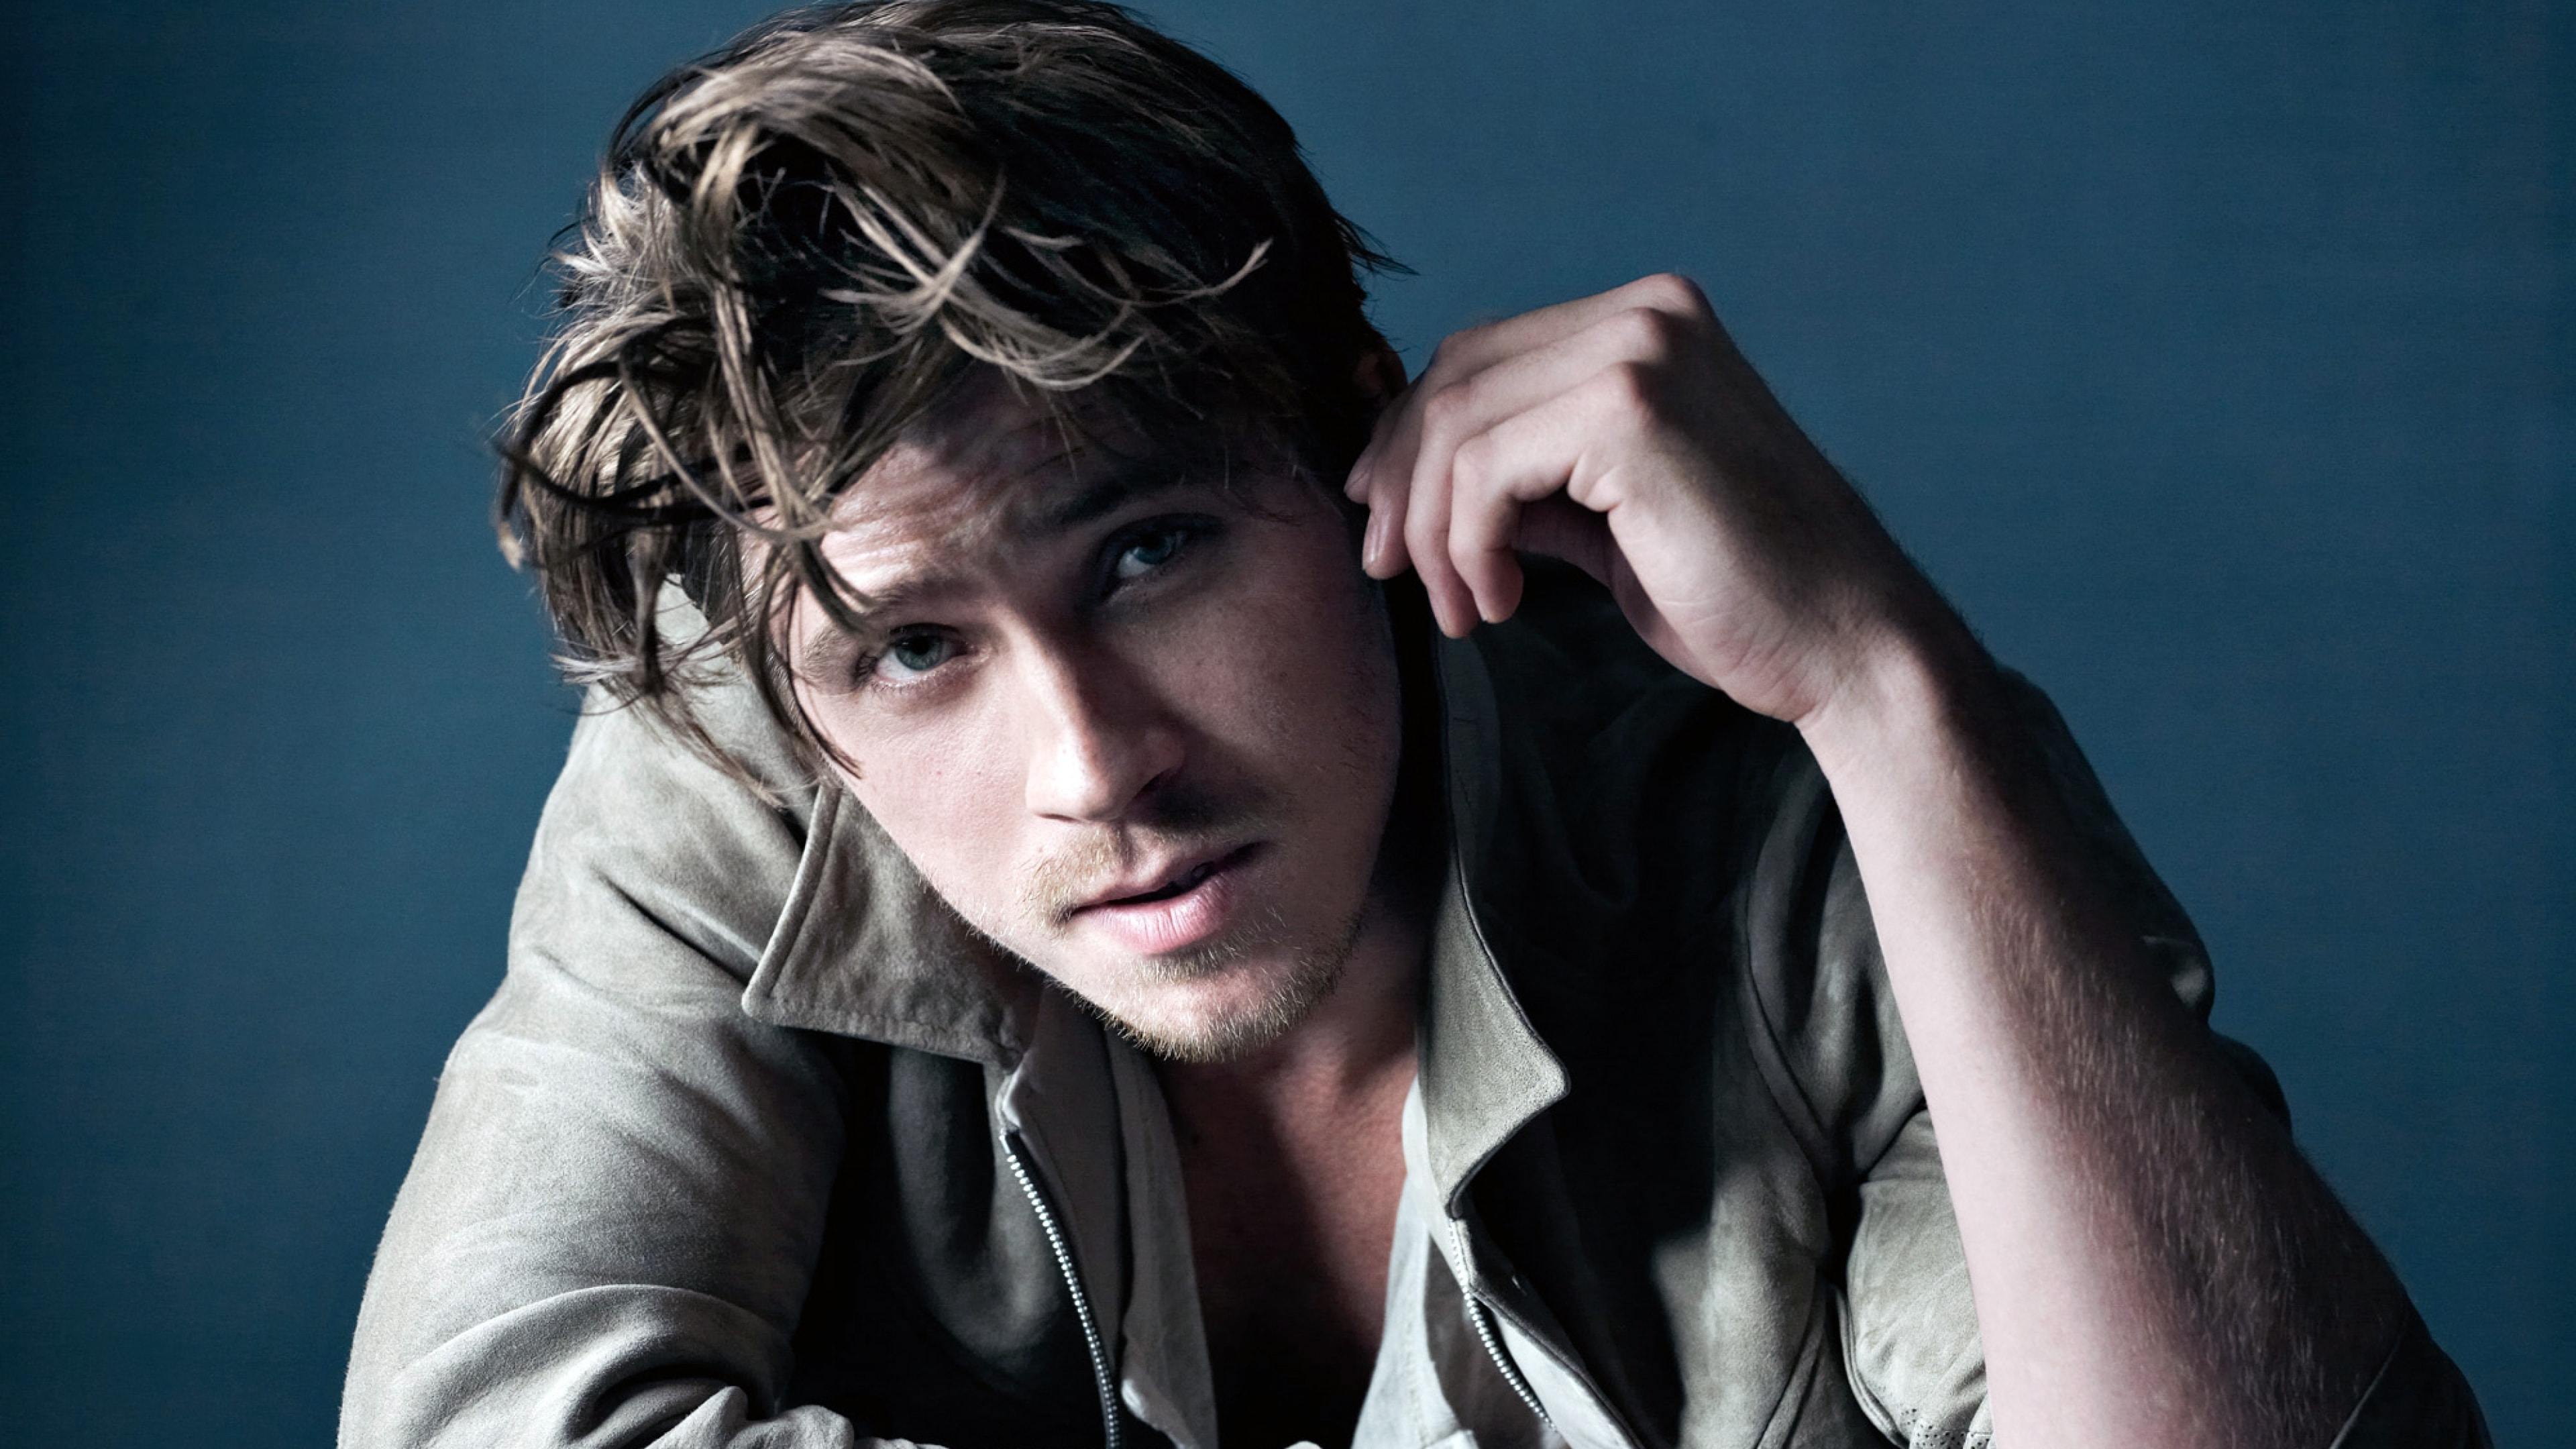 Garrett Hedlund Wallpapers hd